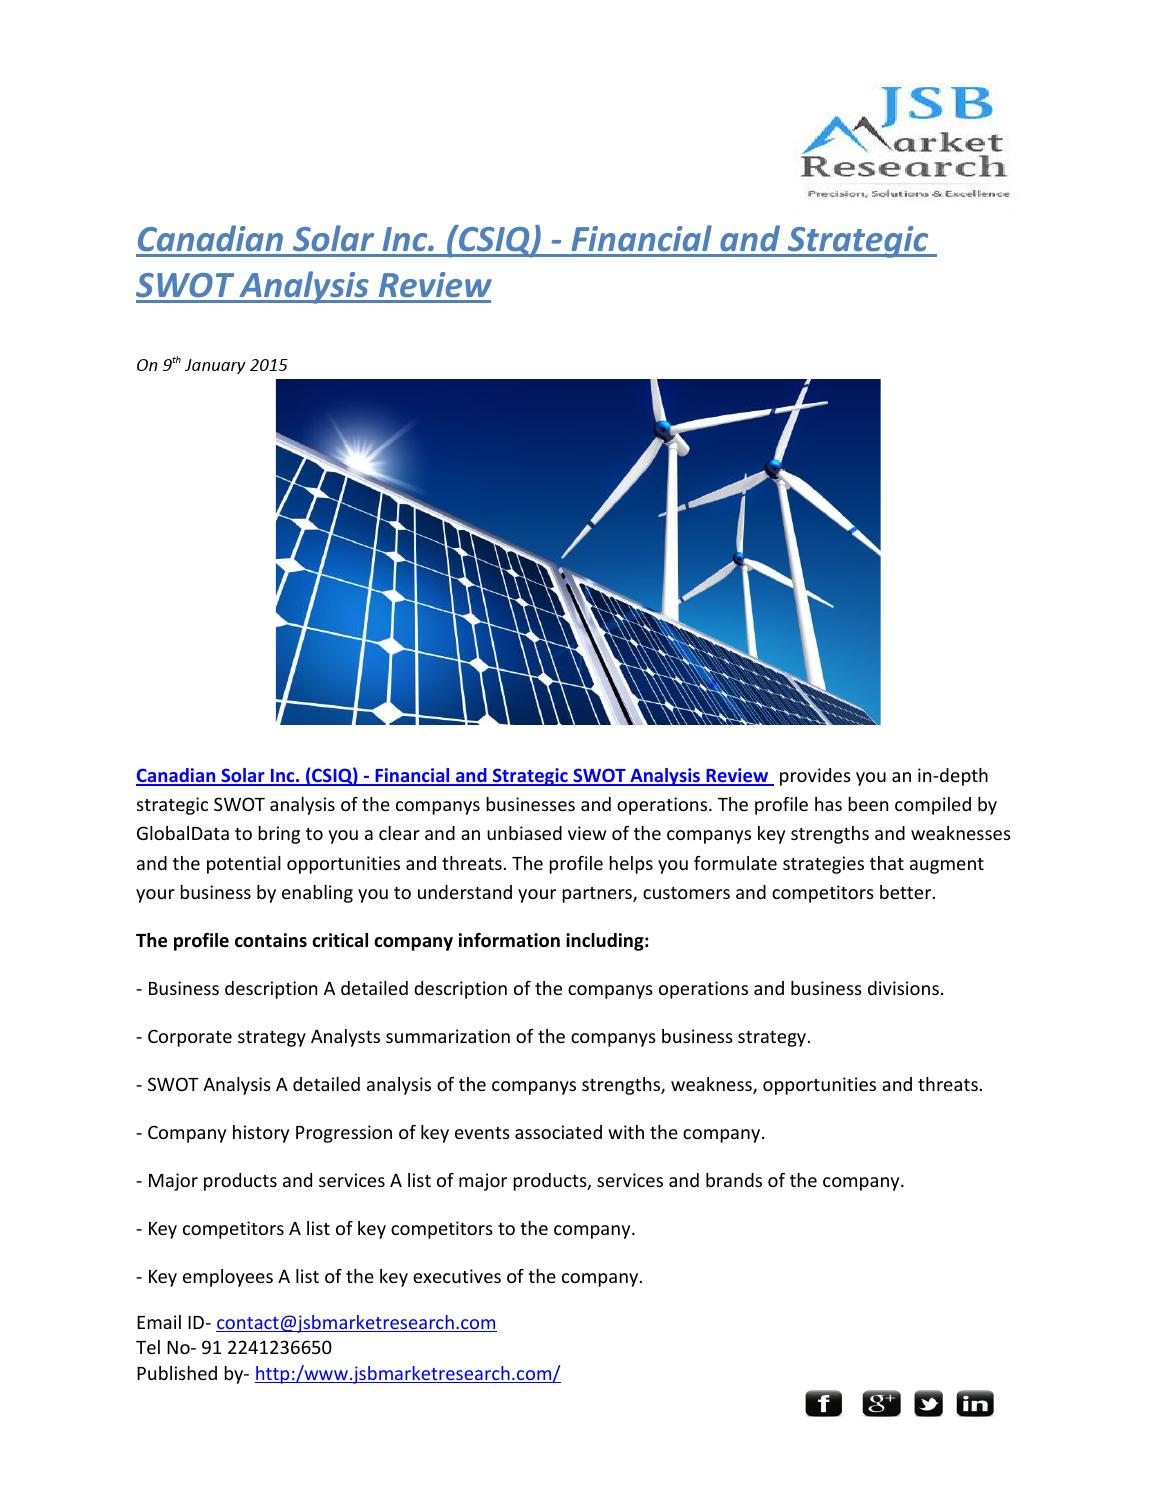 JSB Market Research: Canadian Solar Inc  (CSIQ) - Financial